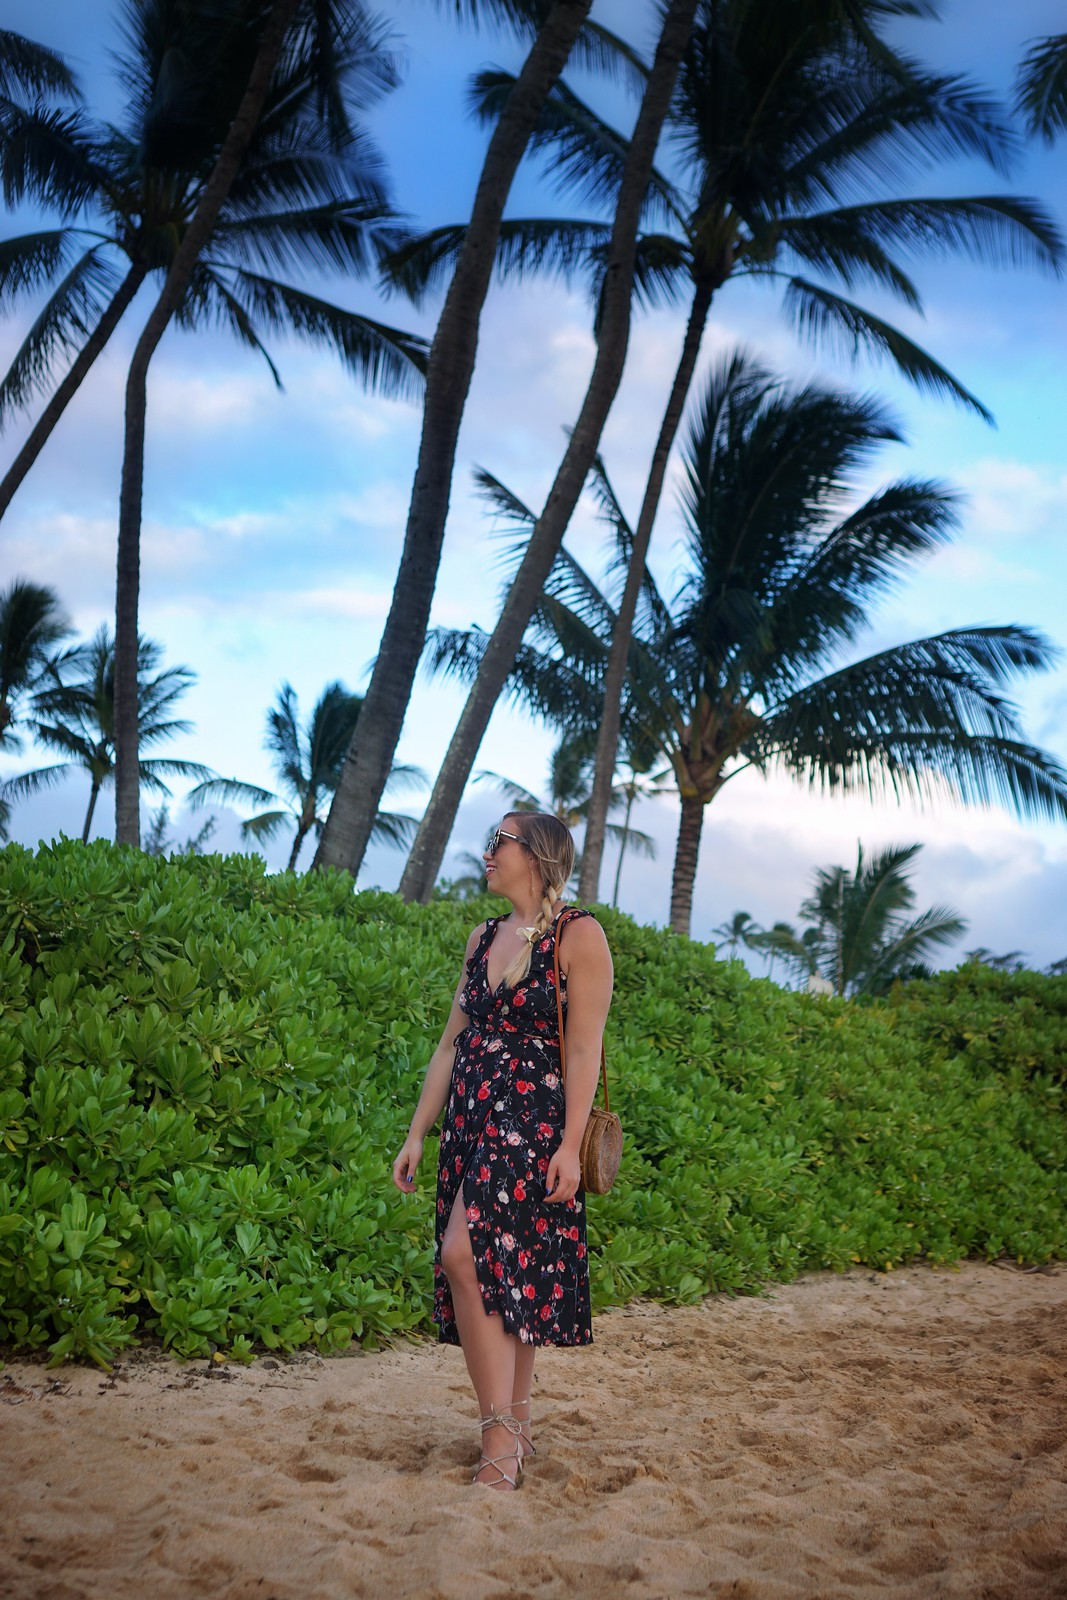 Sunset Poipu Beach Dark Floral Dress Hawaii Outfit Inspiration | Kauai Travel Guide